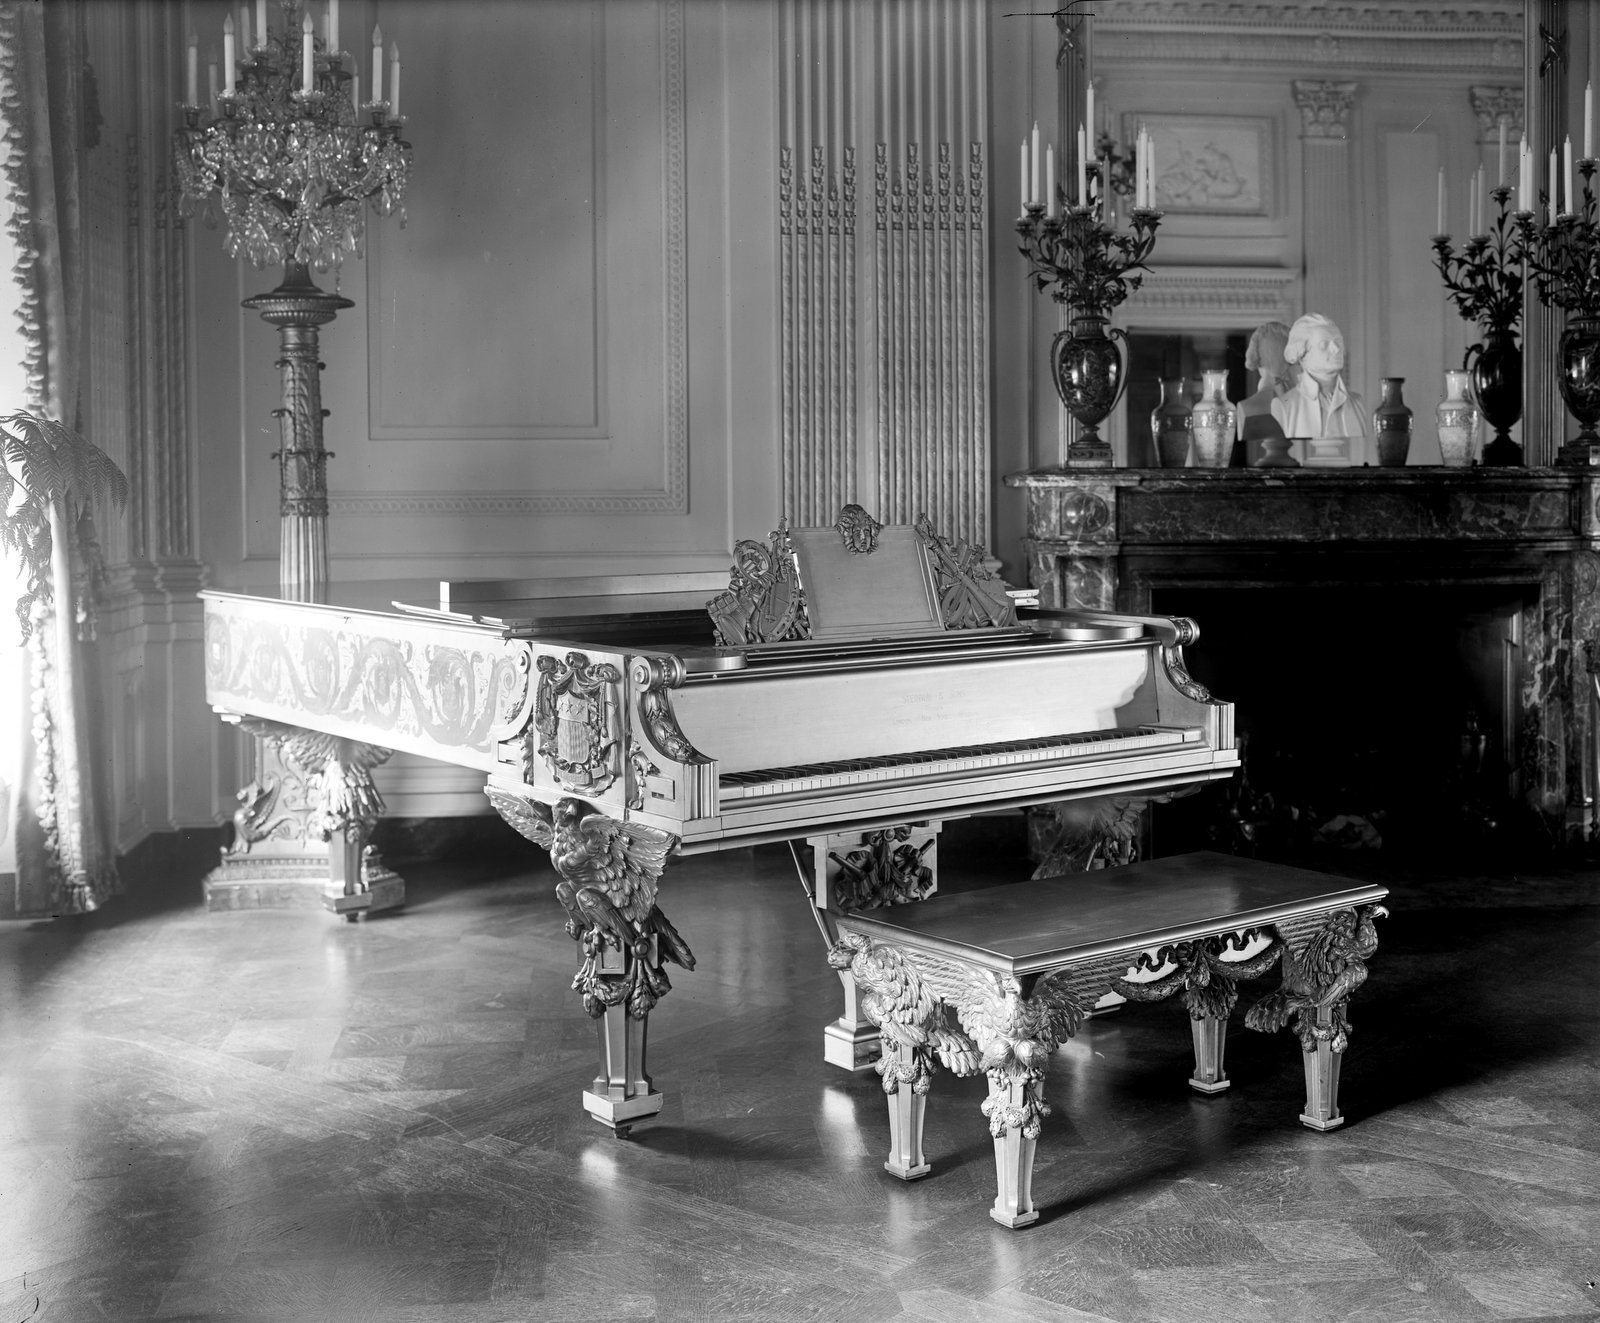 The Gold Piano at the White House - 1900s